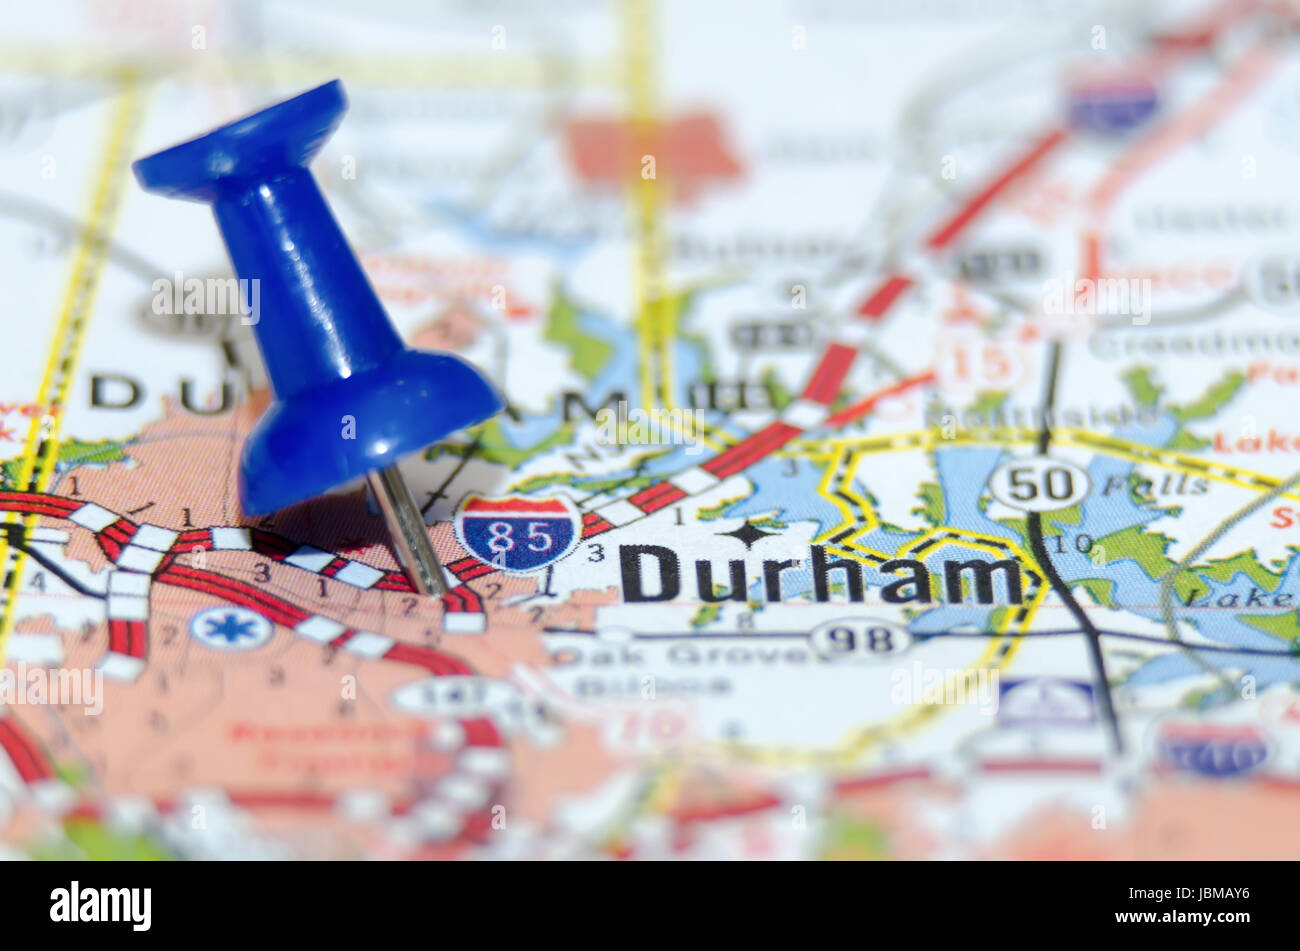 Durham City Pin On The Map Stock Photo 144891802 Alamy